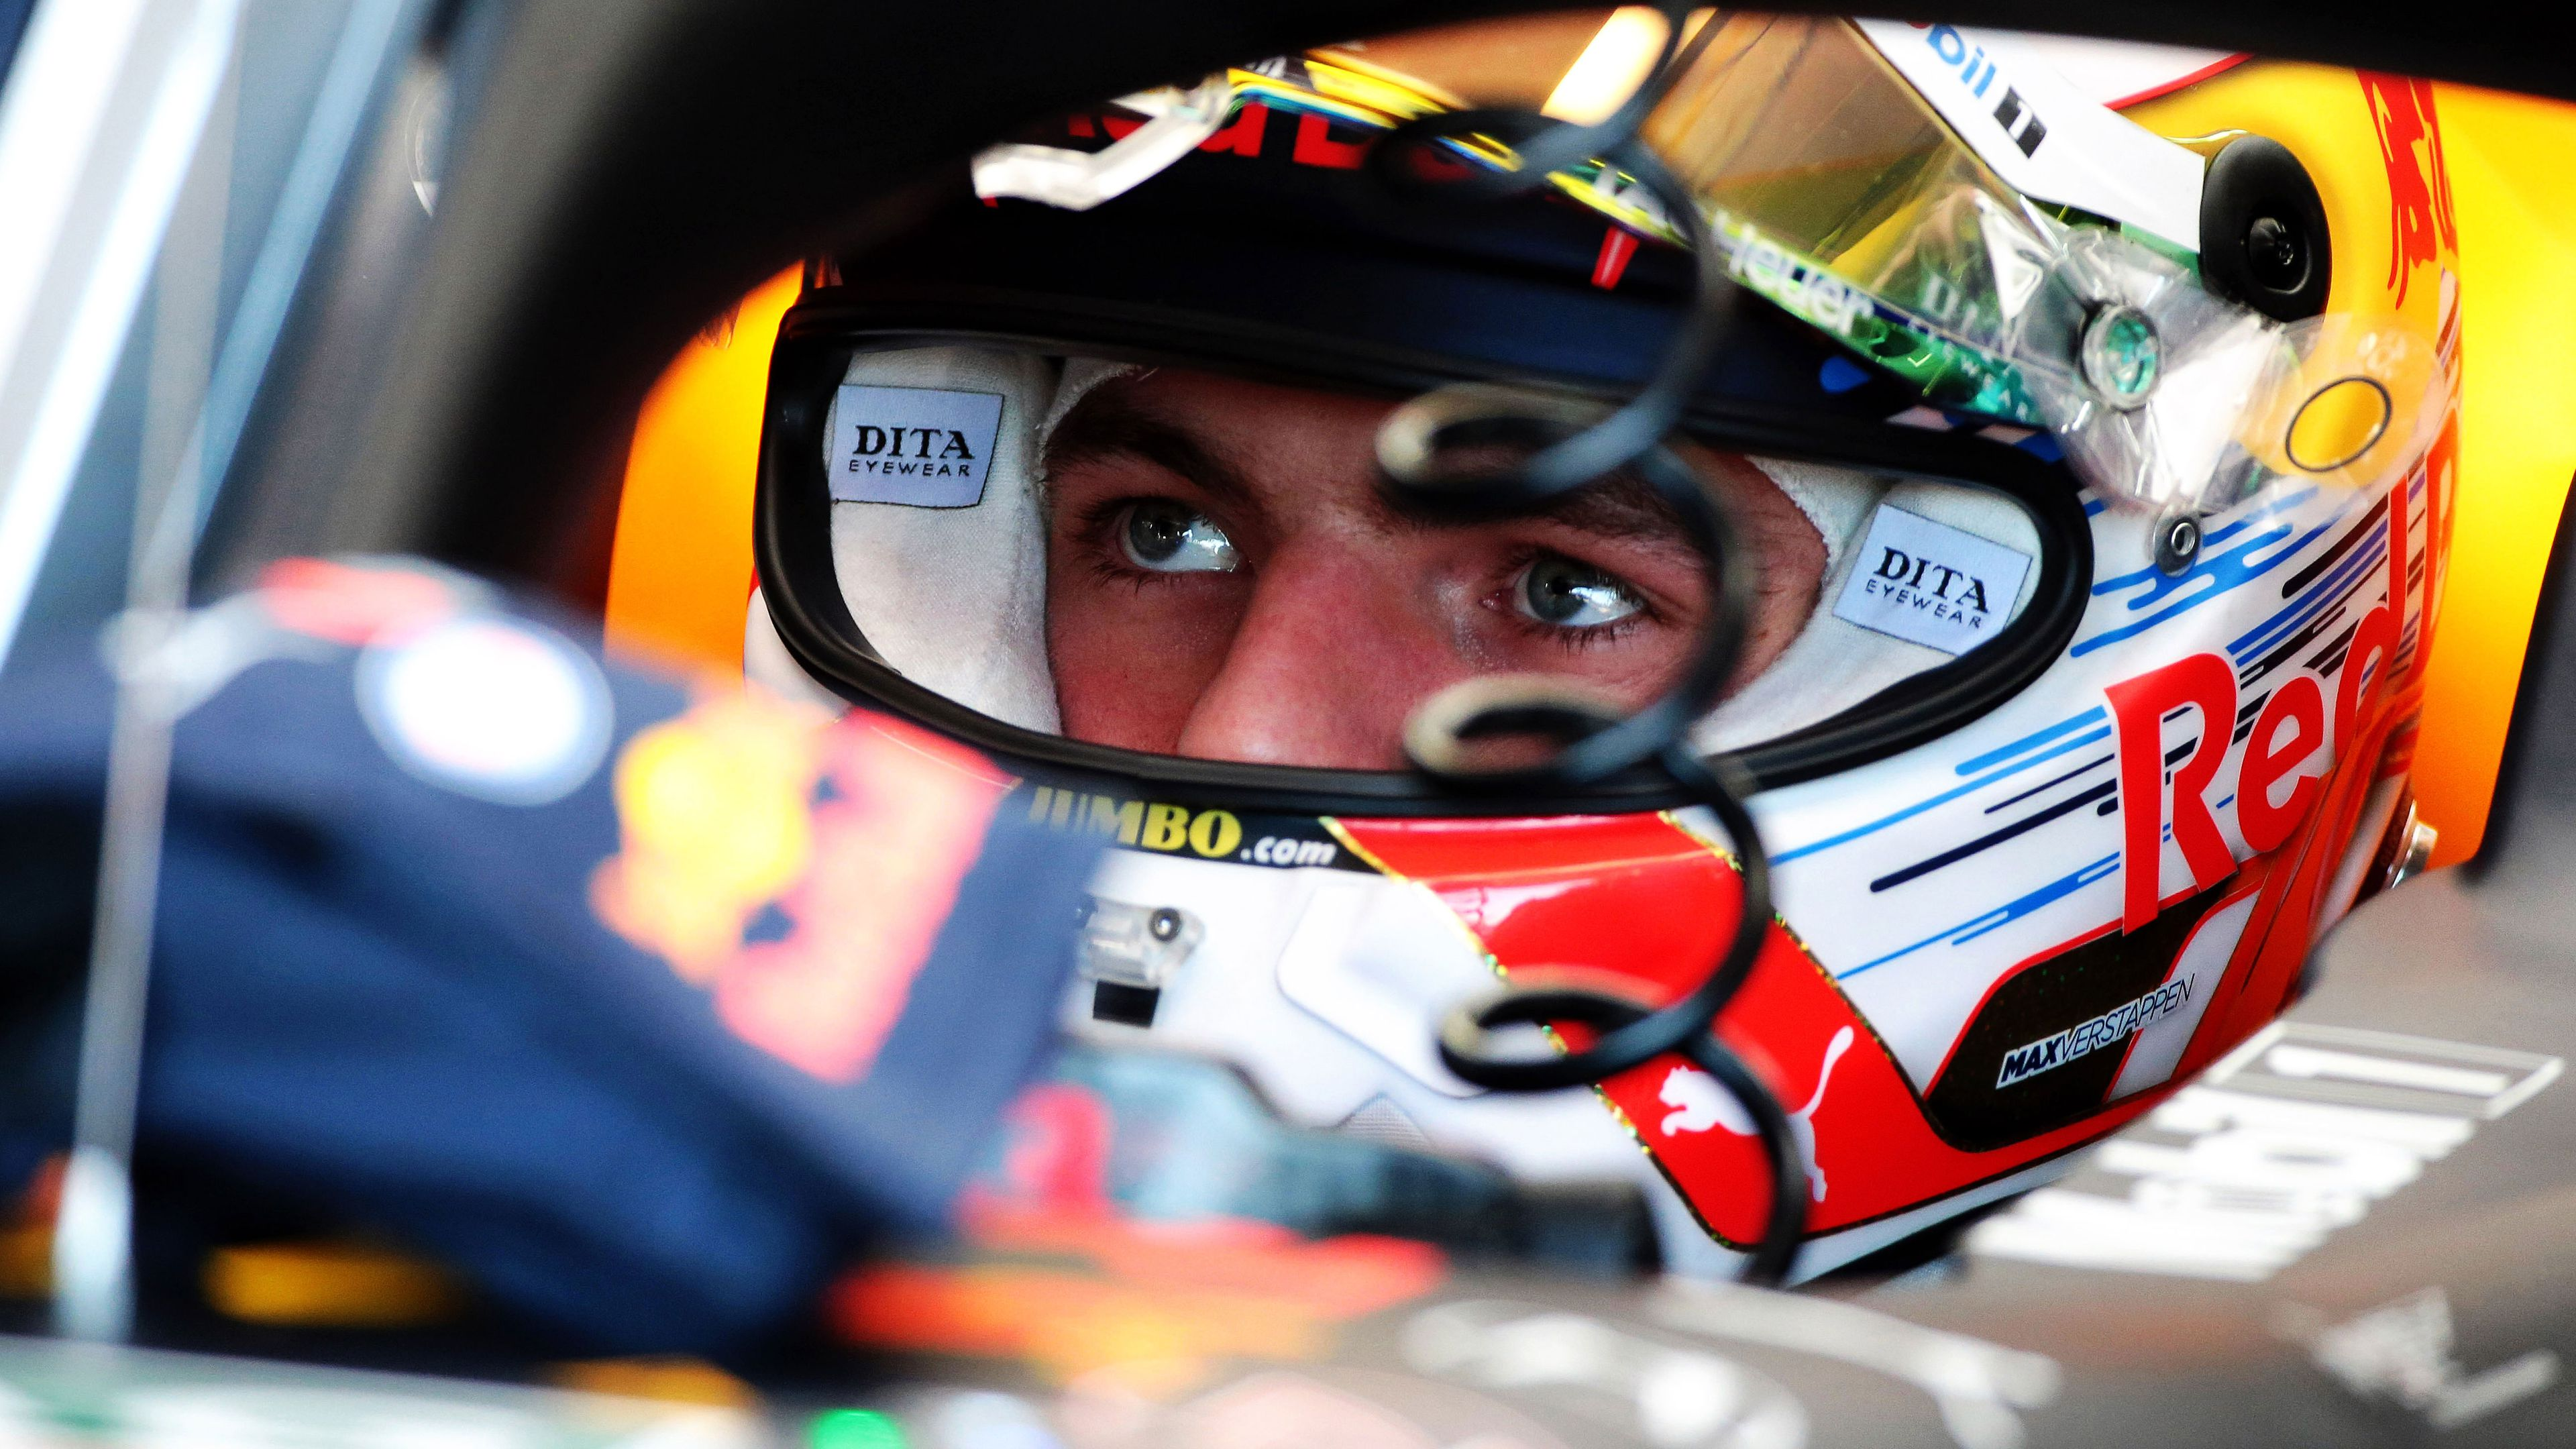 Formula One commentator Martin Brundle heaps praise on Max Verstappen